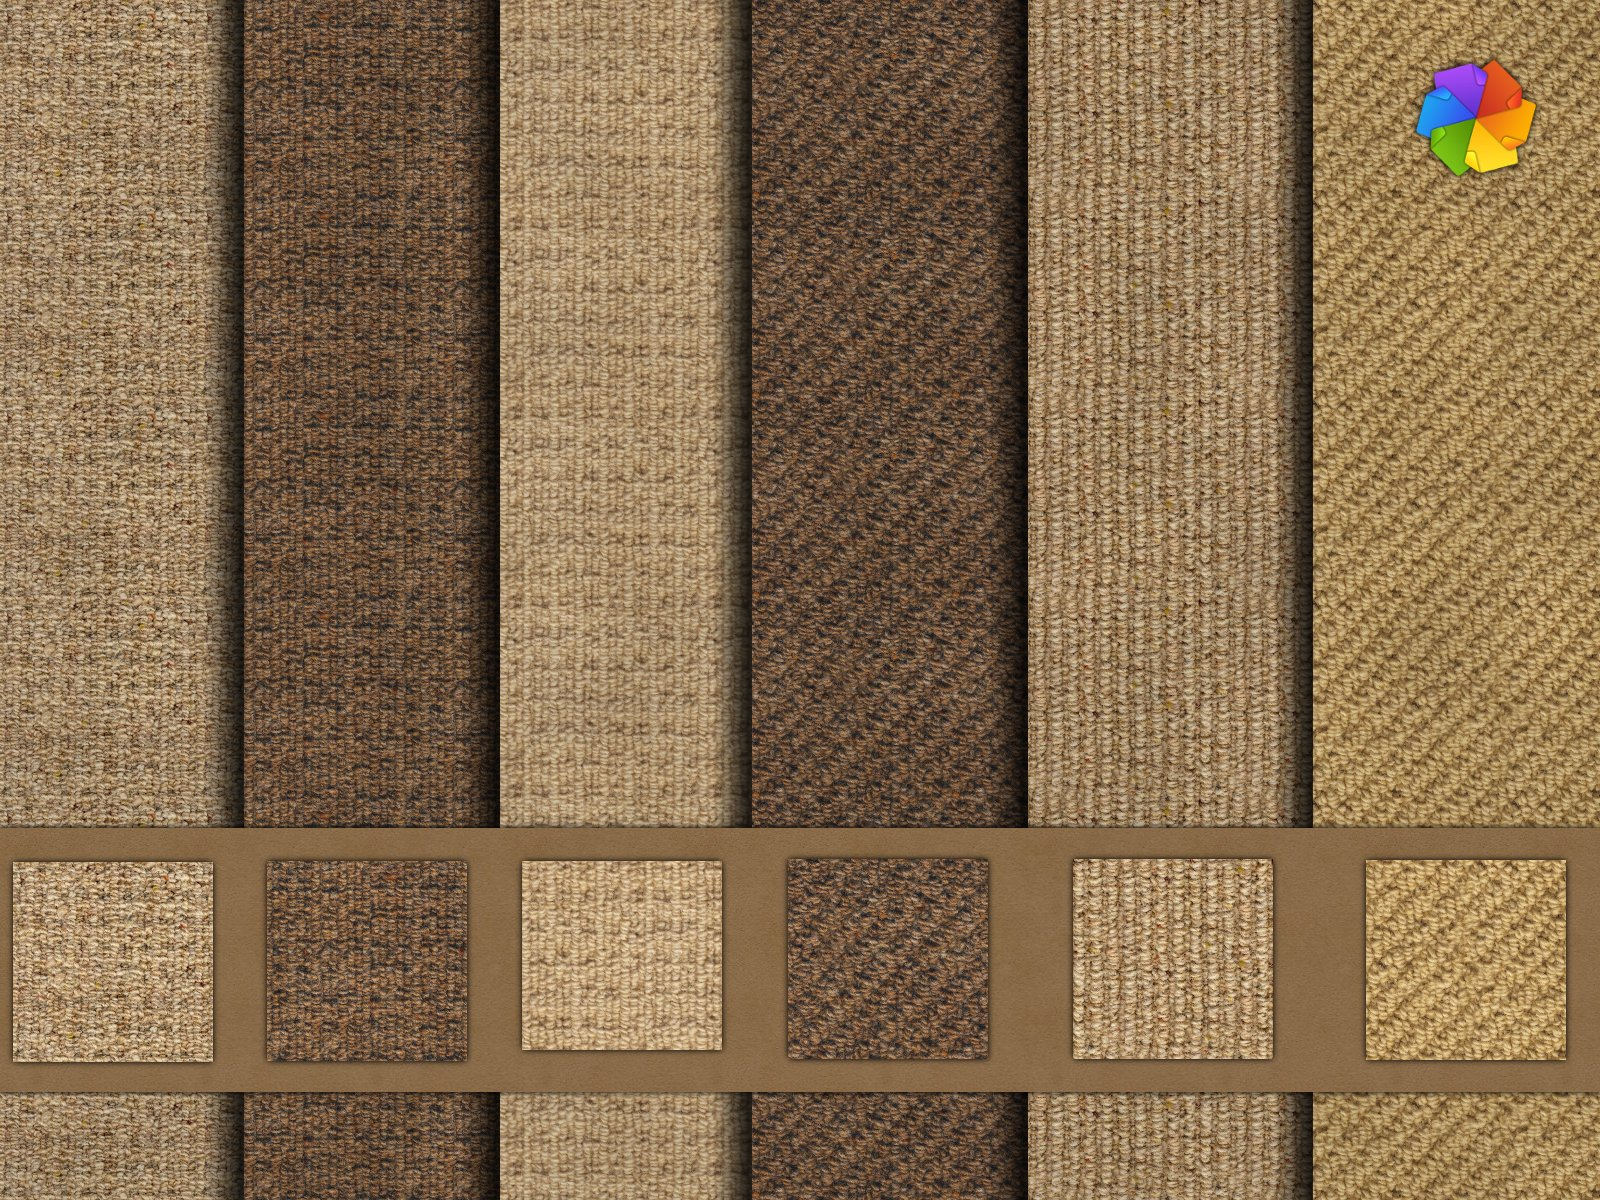 Free High Resolution Carpet Textures By Plaintextures On